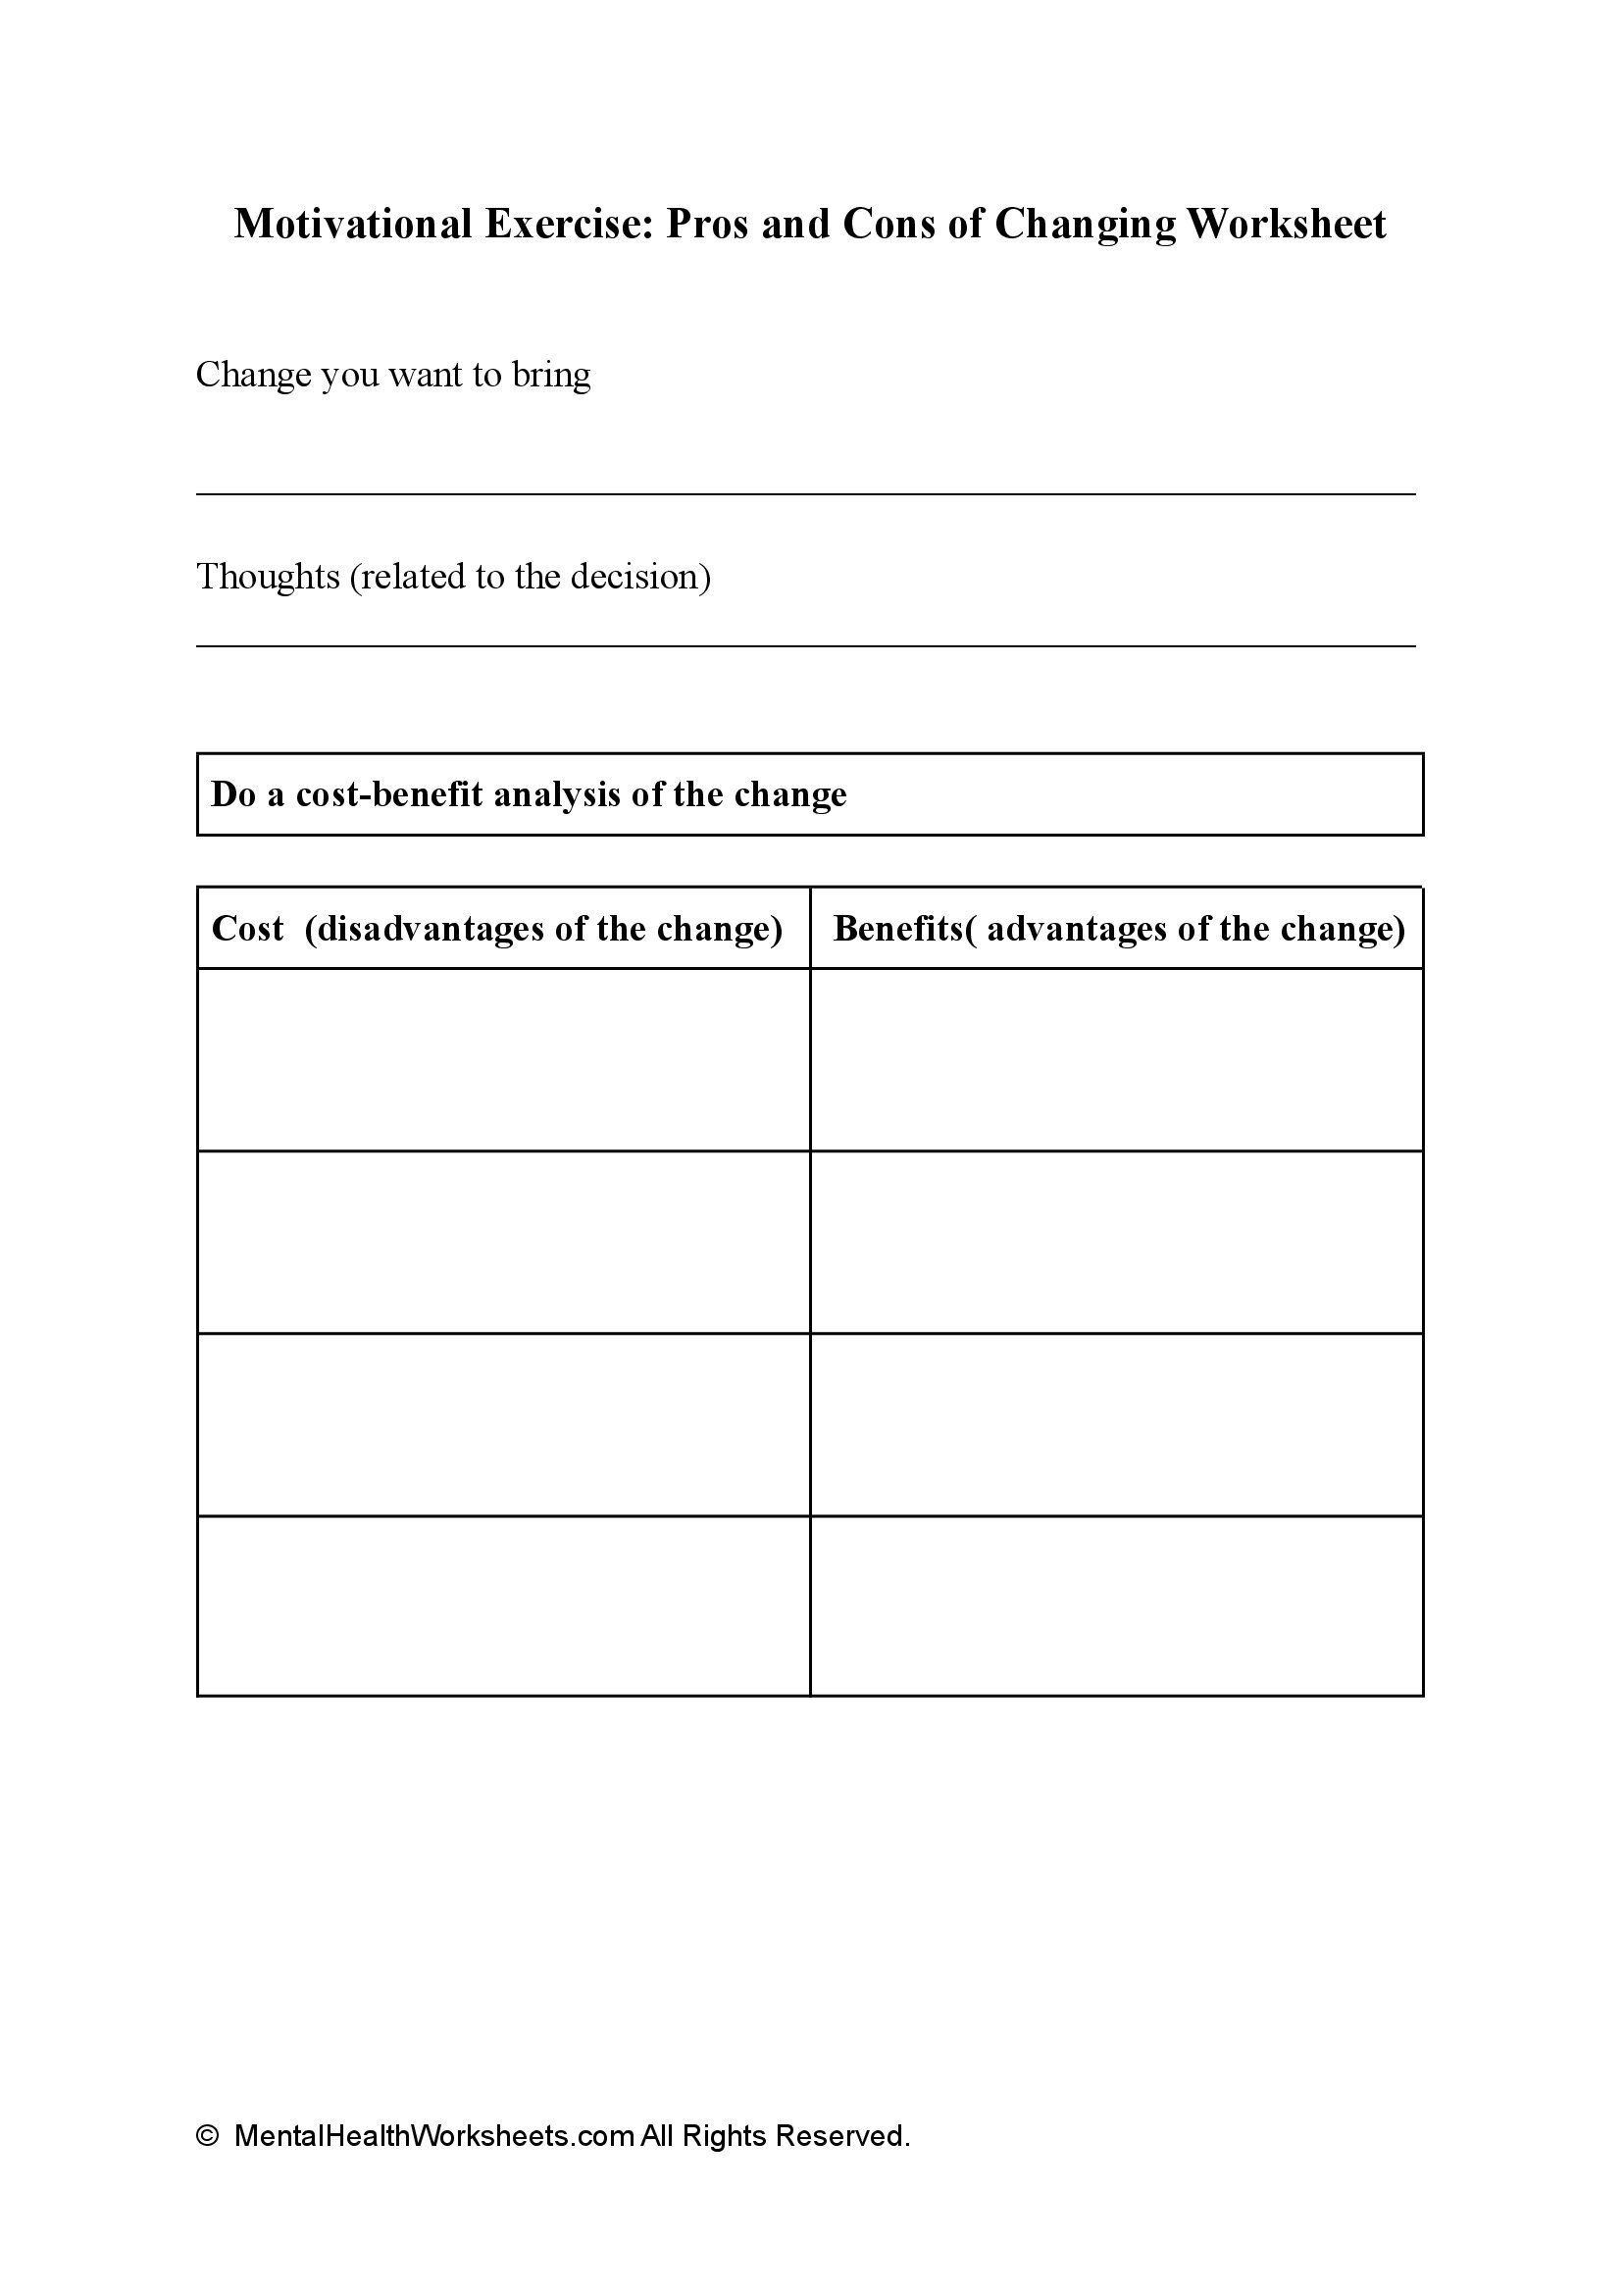 Motivational Exercise: Pros and Cons of Changing Worksheet